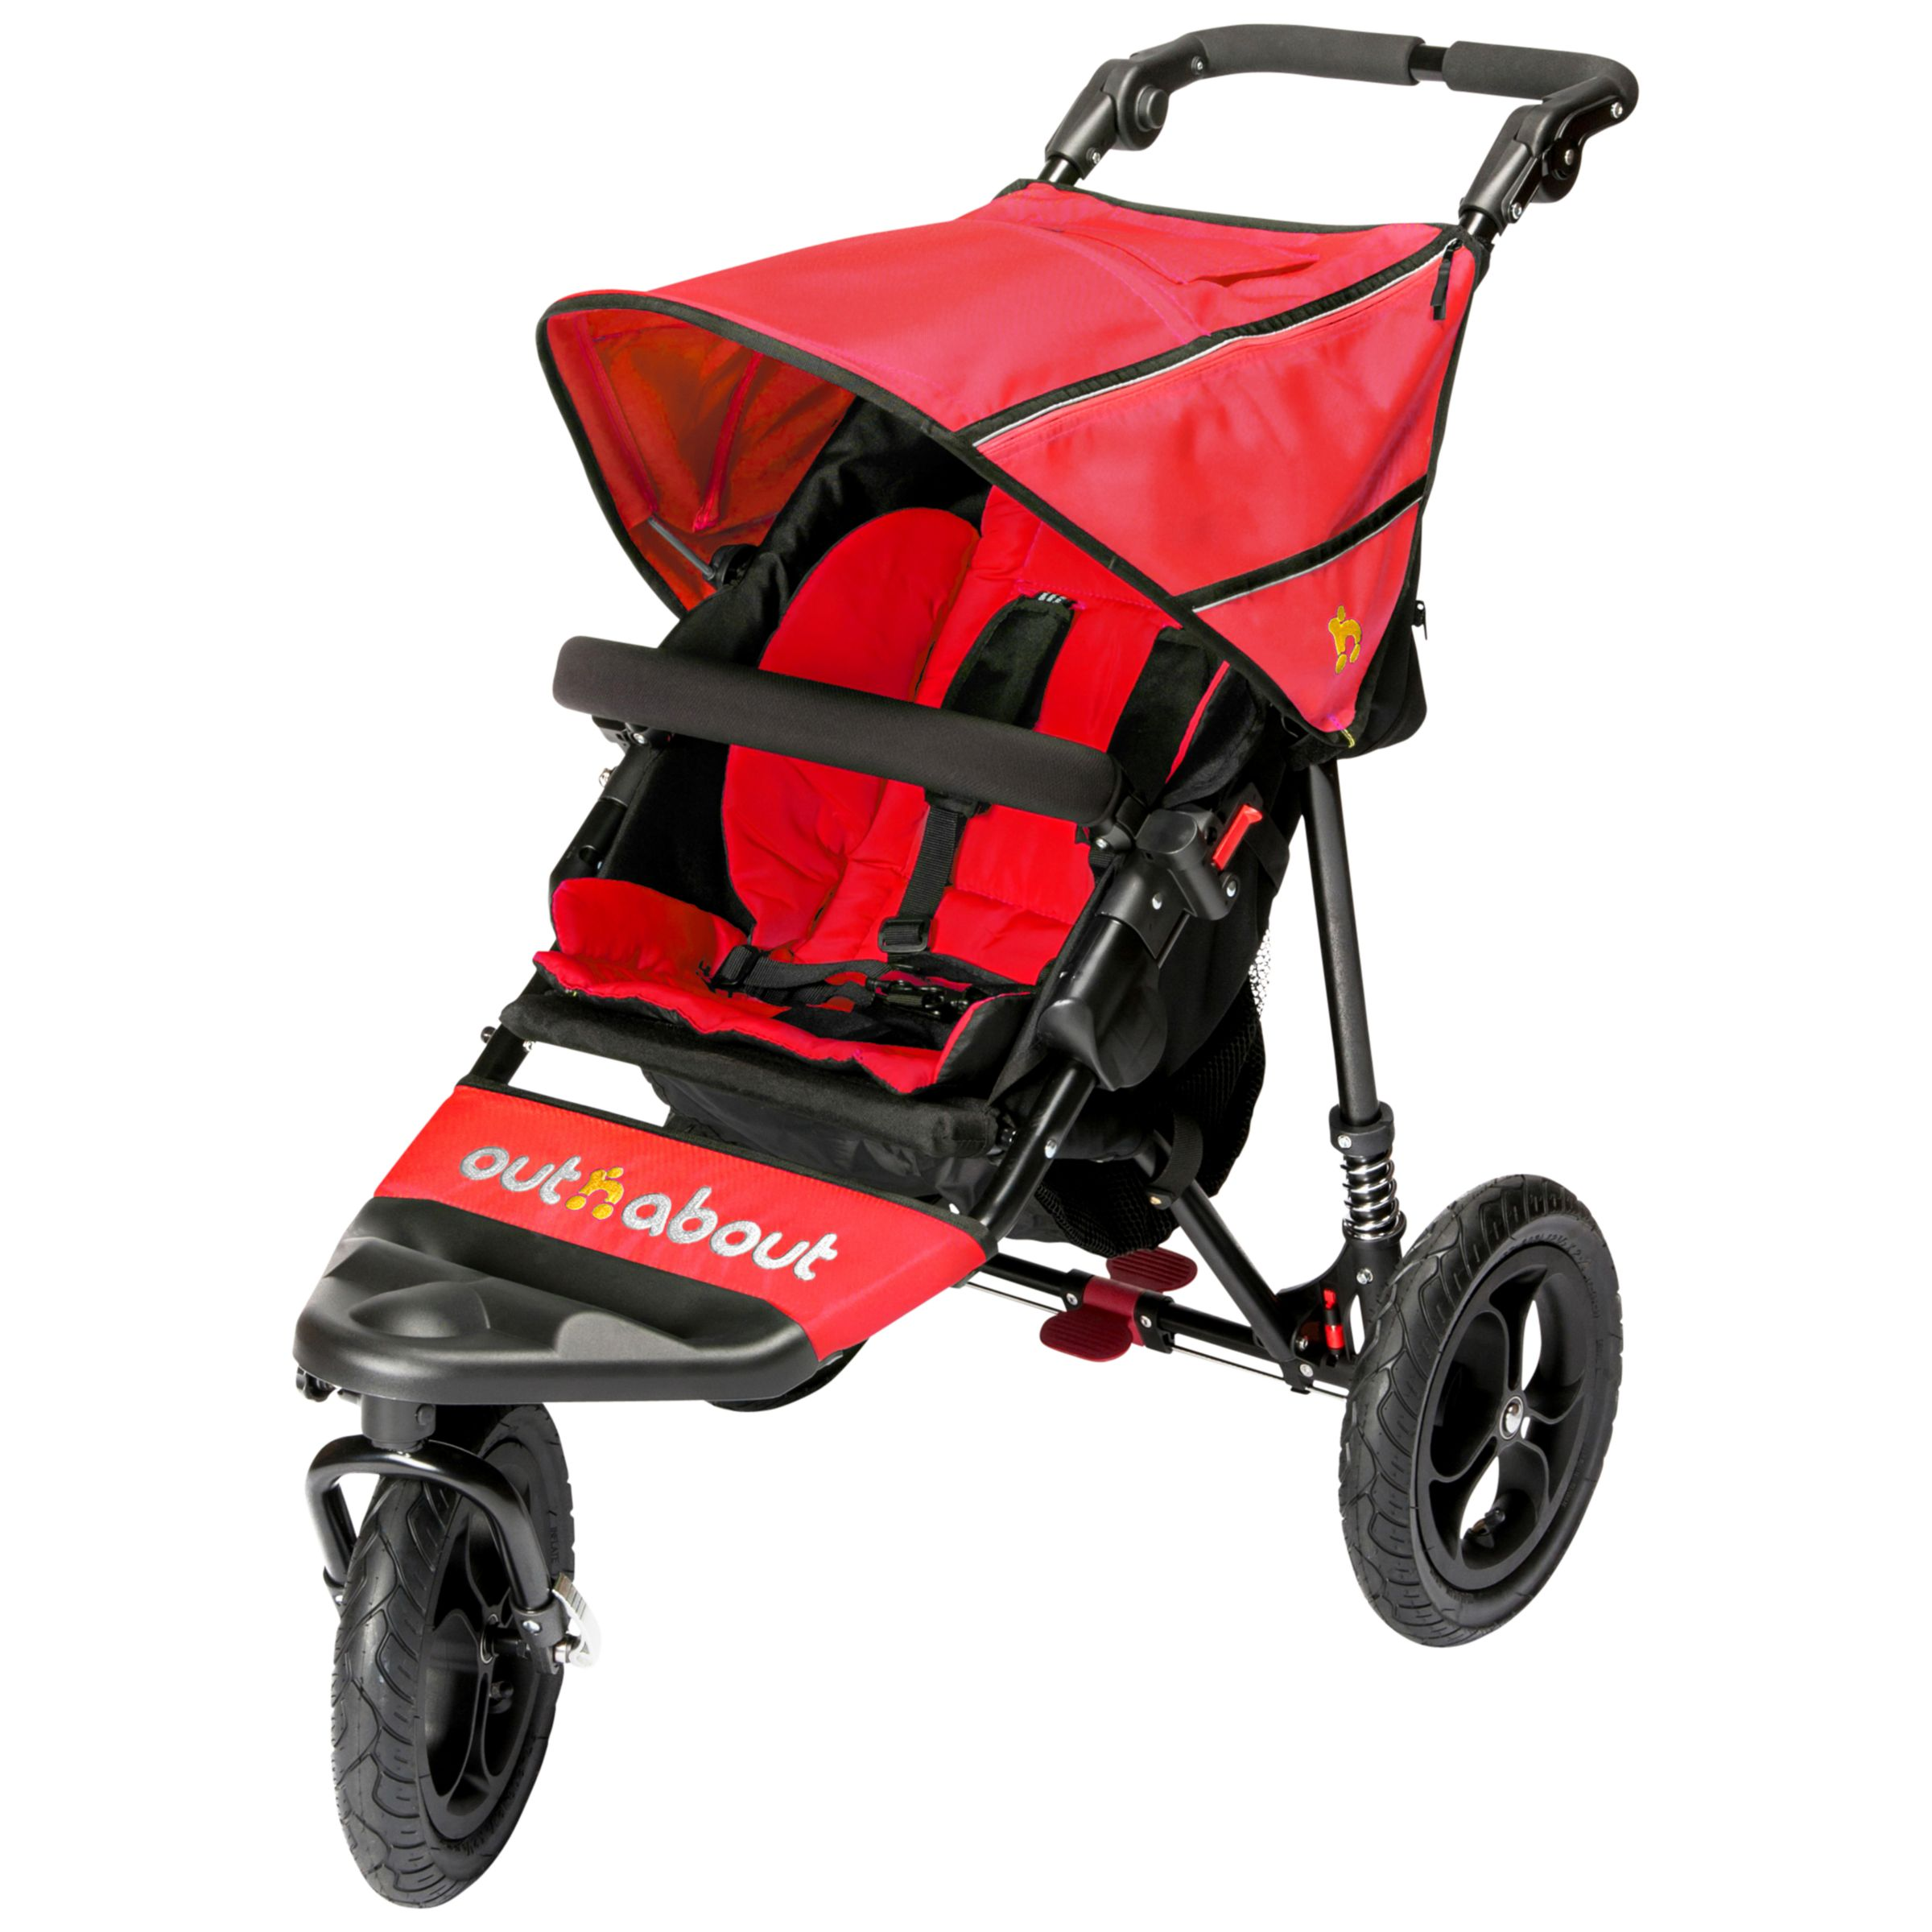 Out 'N' About Out 'N' About Nipper 360 Single V4 Pushchair, Red